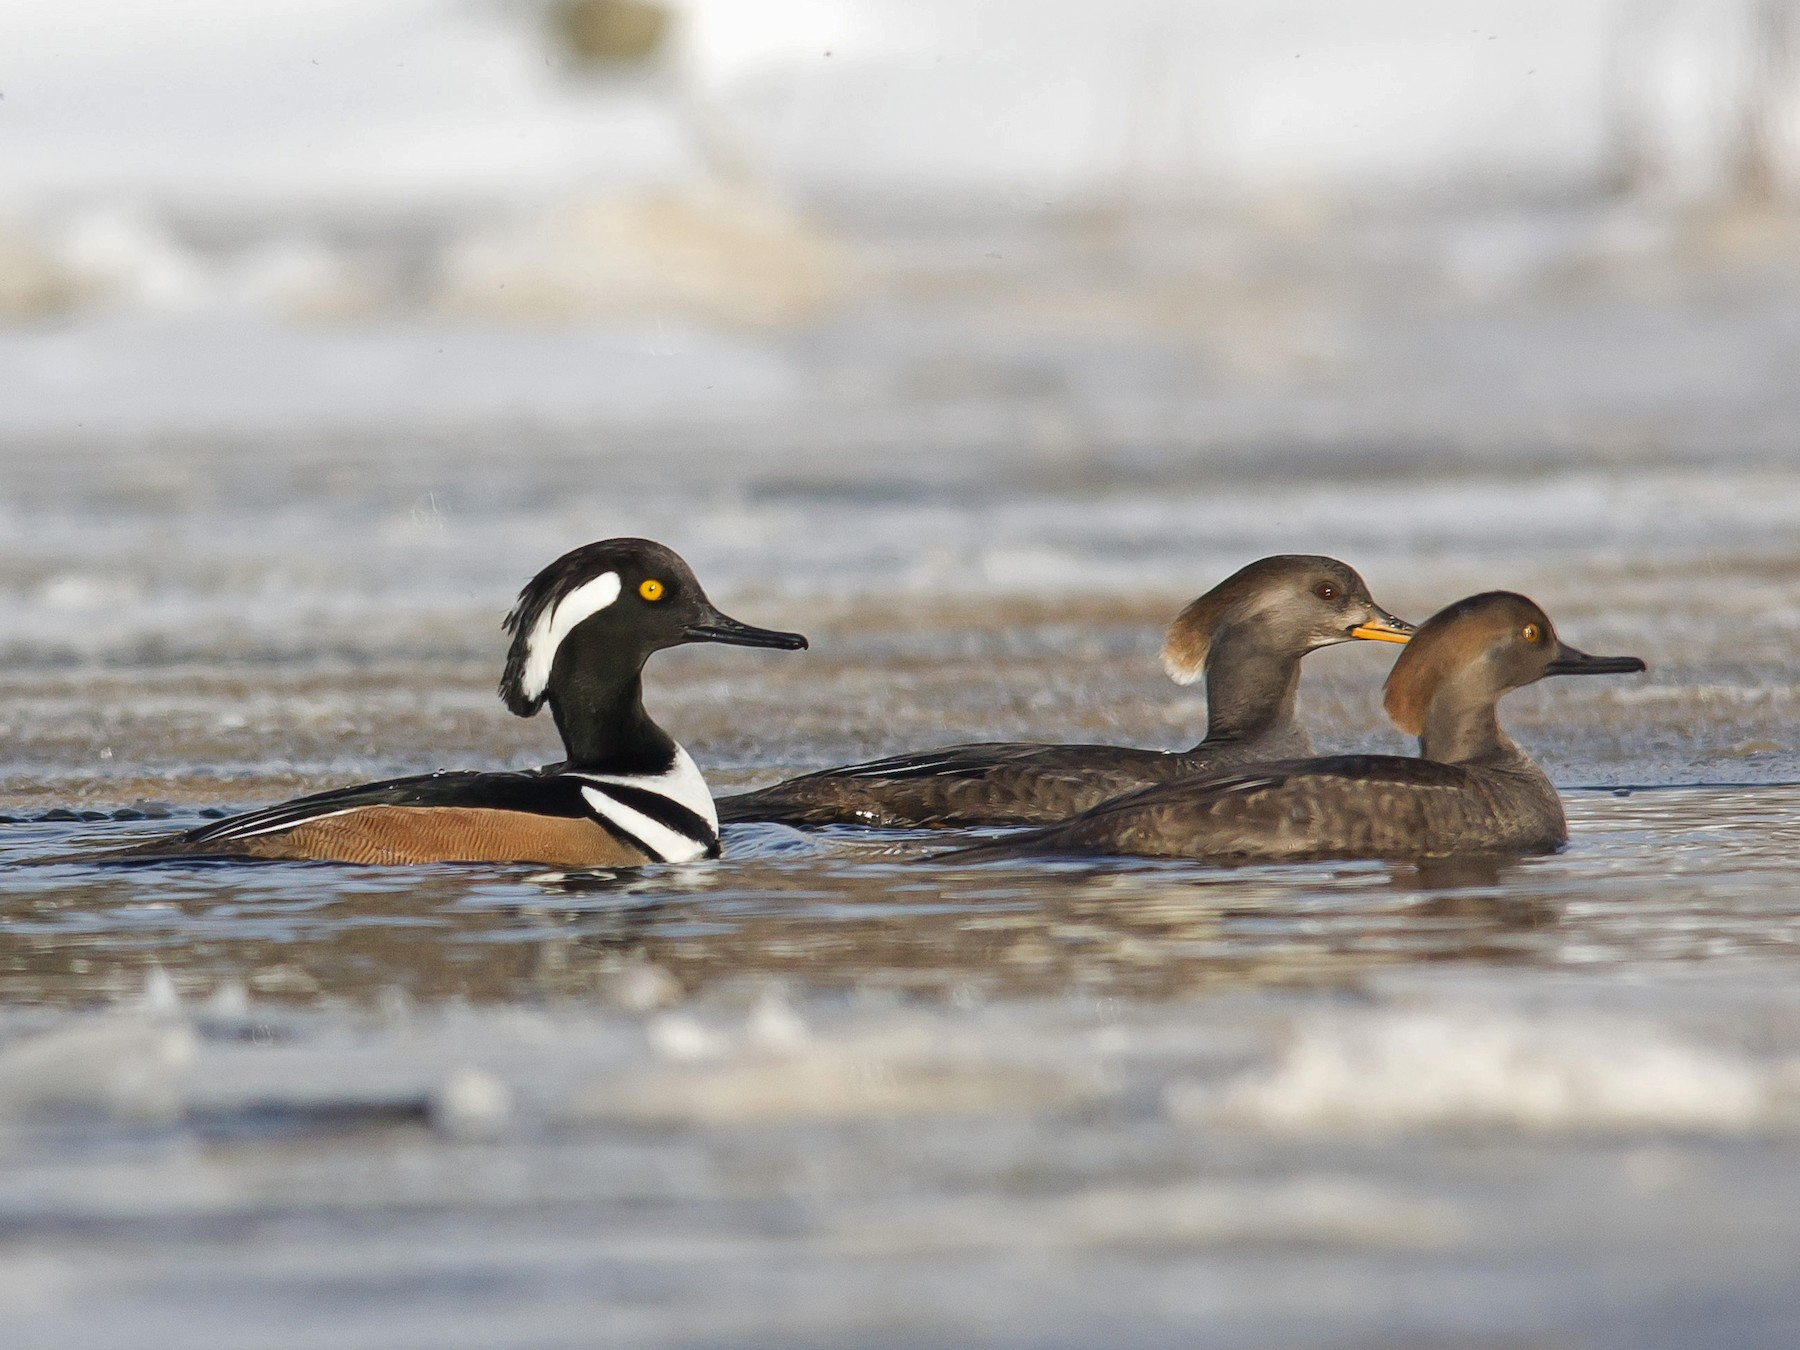 Hooded Merganser - Alix d'Entremont